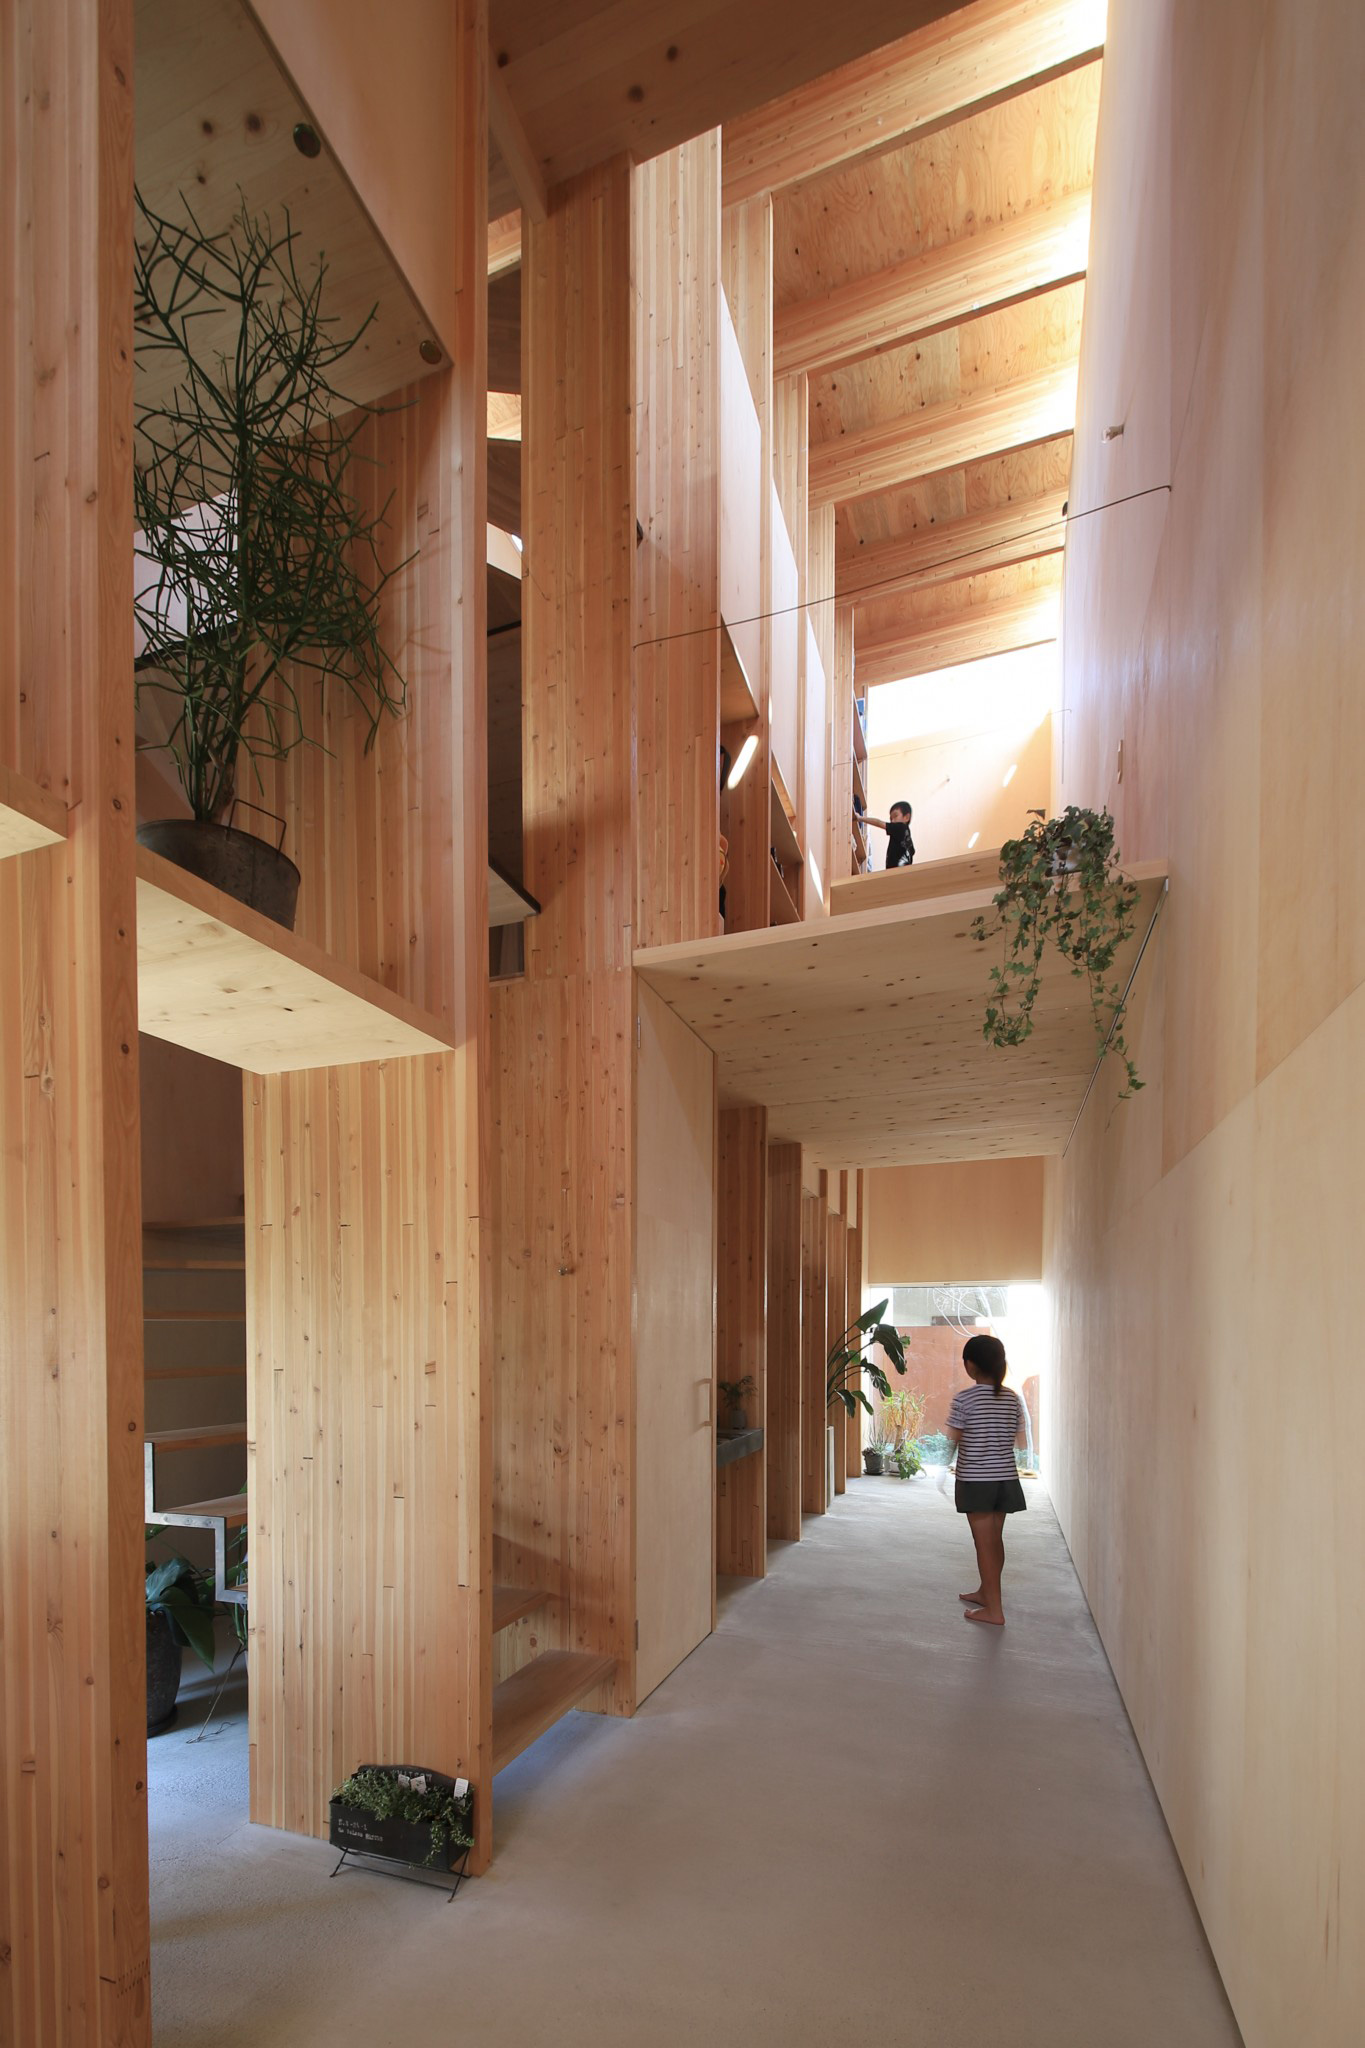 T Noie, Japan by Katsutoshi Sasaki and Associates | Dezeen | Architecture | Awards | 2019 |  STIRworld